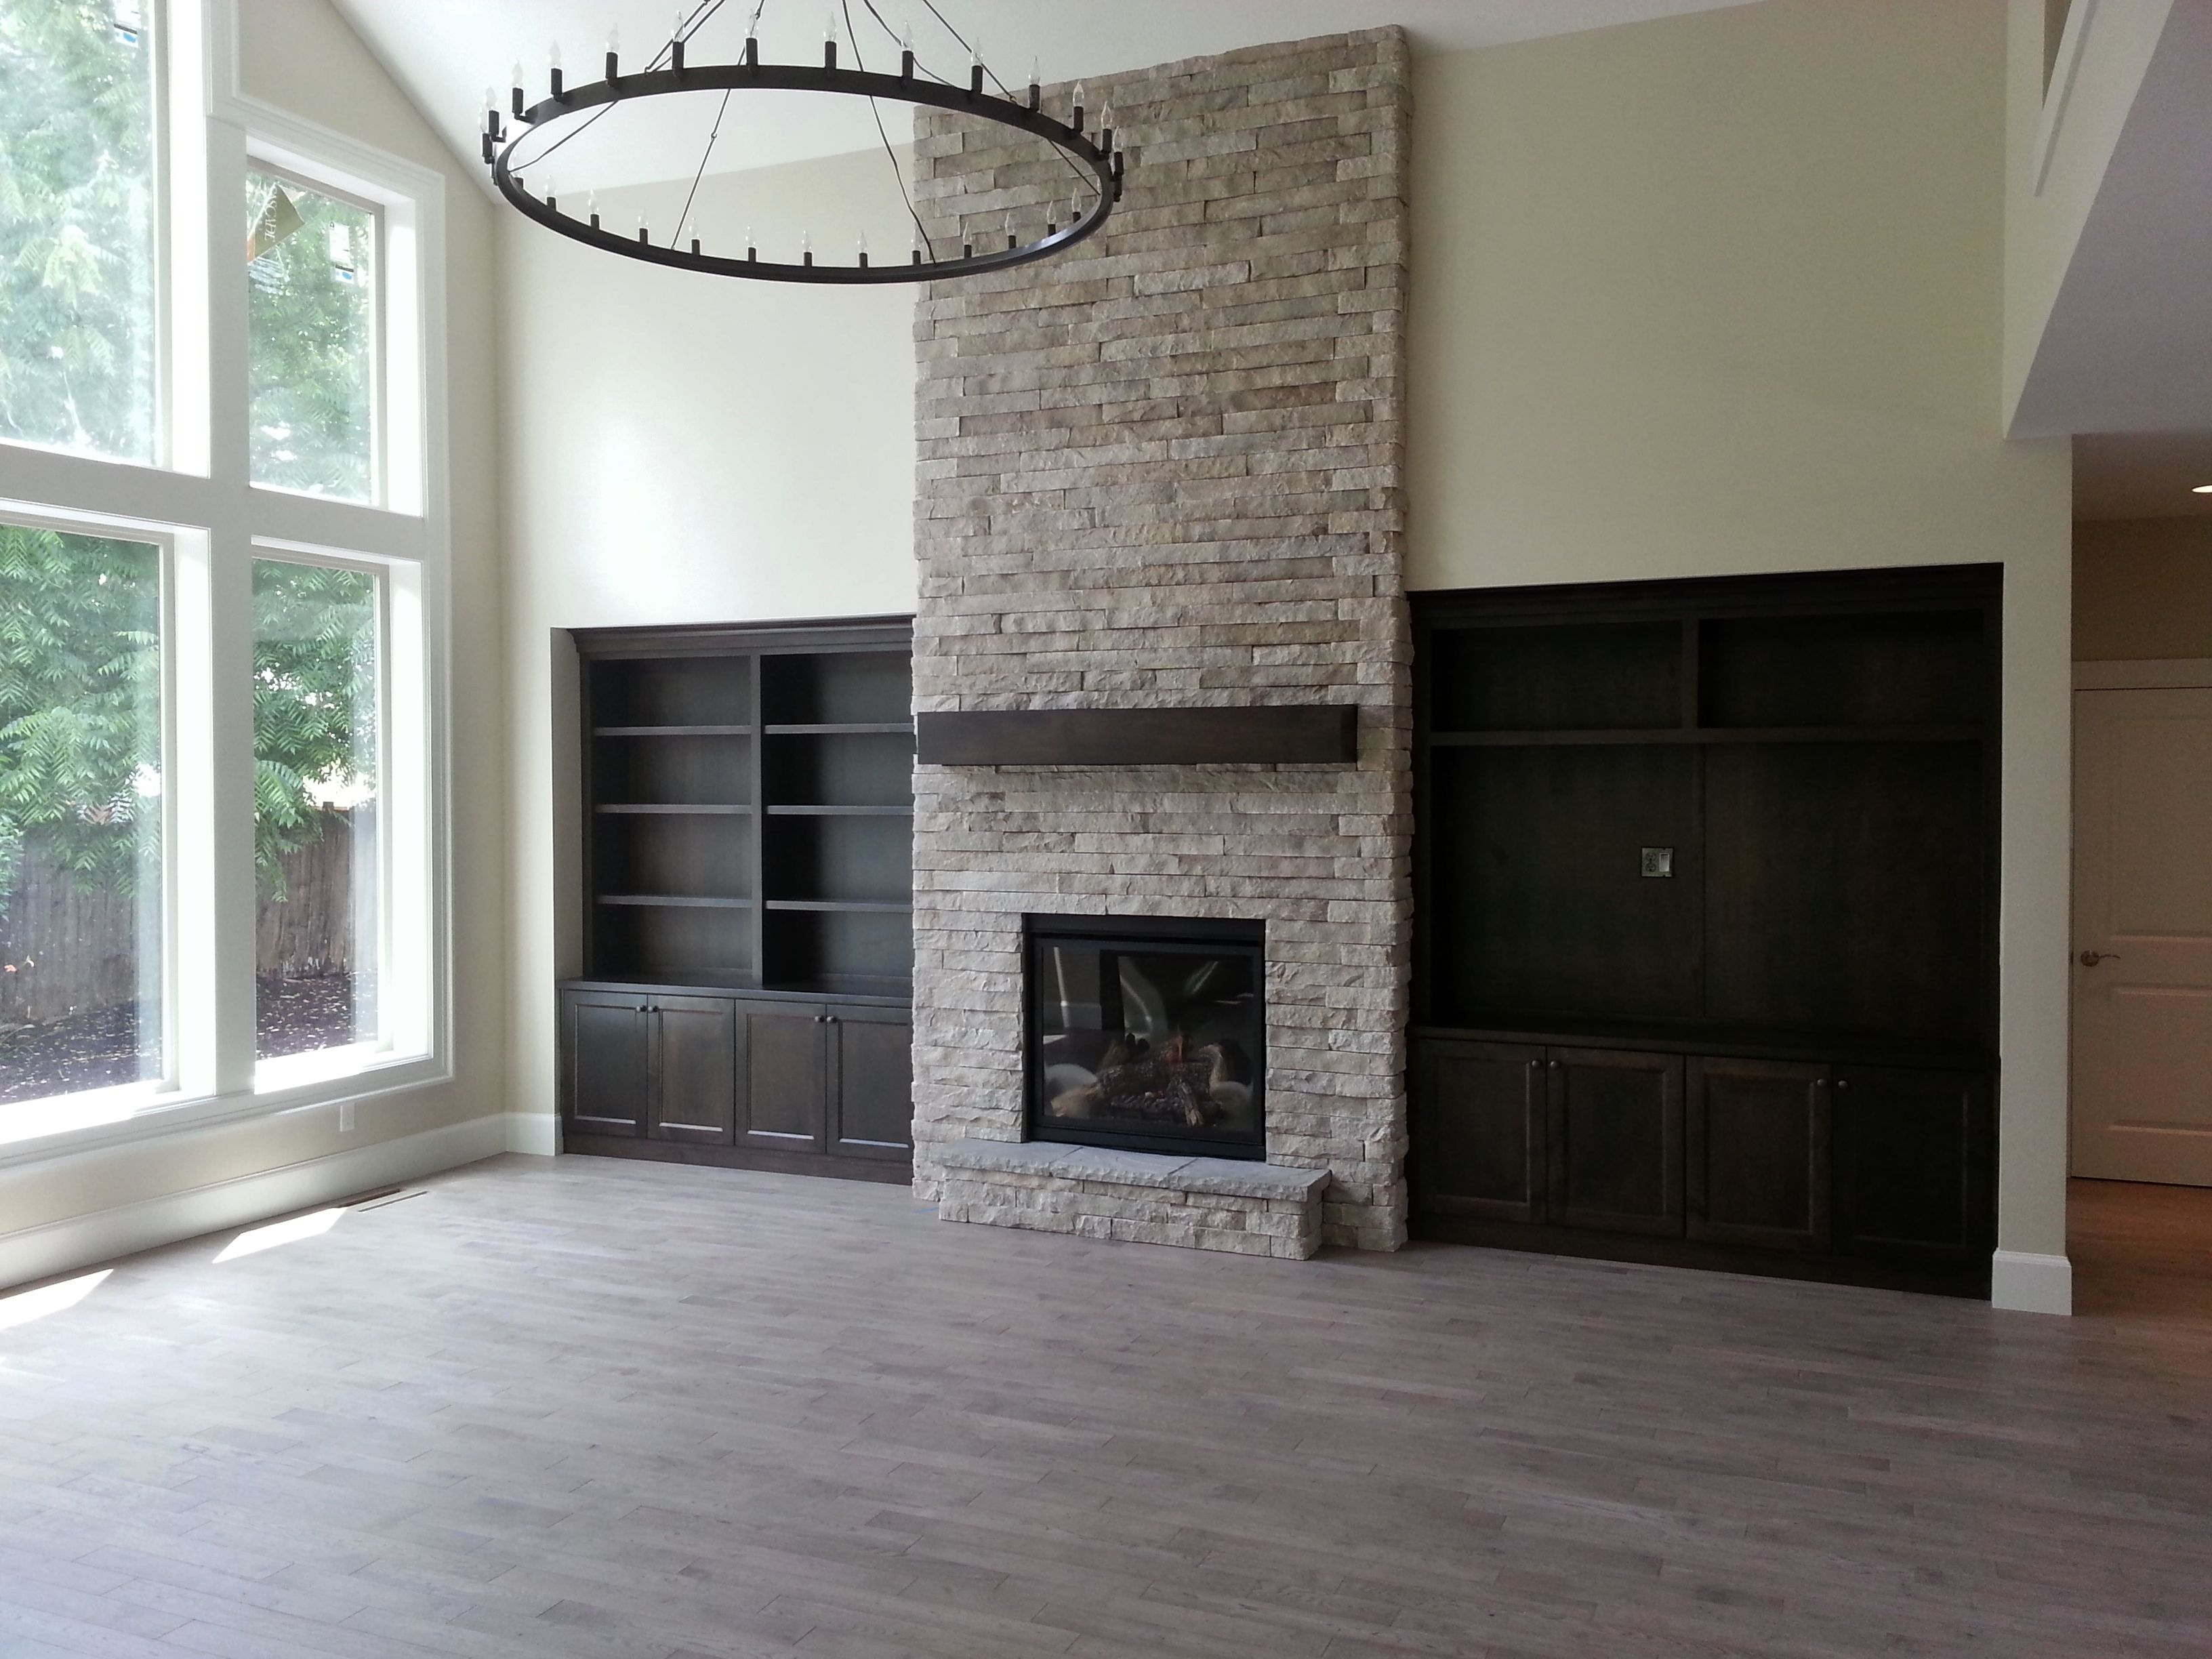 fireplace, indoor fireplace, stone to ceiling, gas